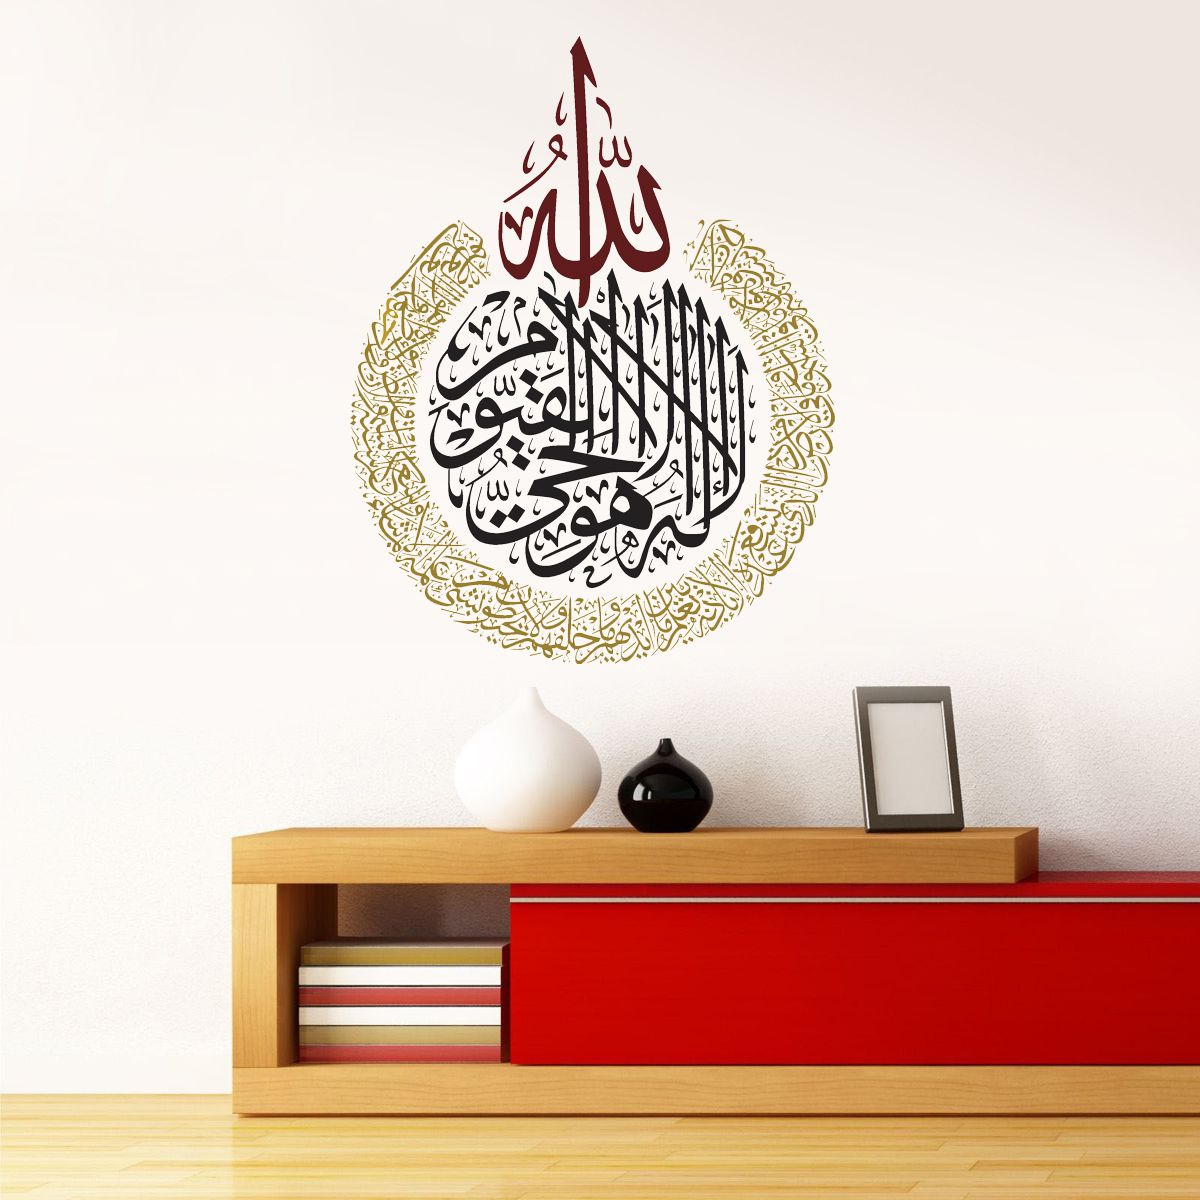 walkart Wallstickers (9694) Aayathul kurshi Islamic decor Religious & Inspirational Religious & Inspirational PVC Sticker